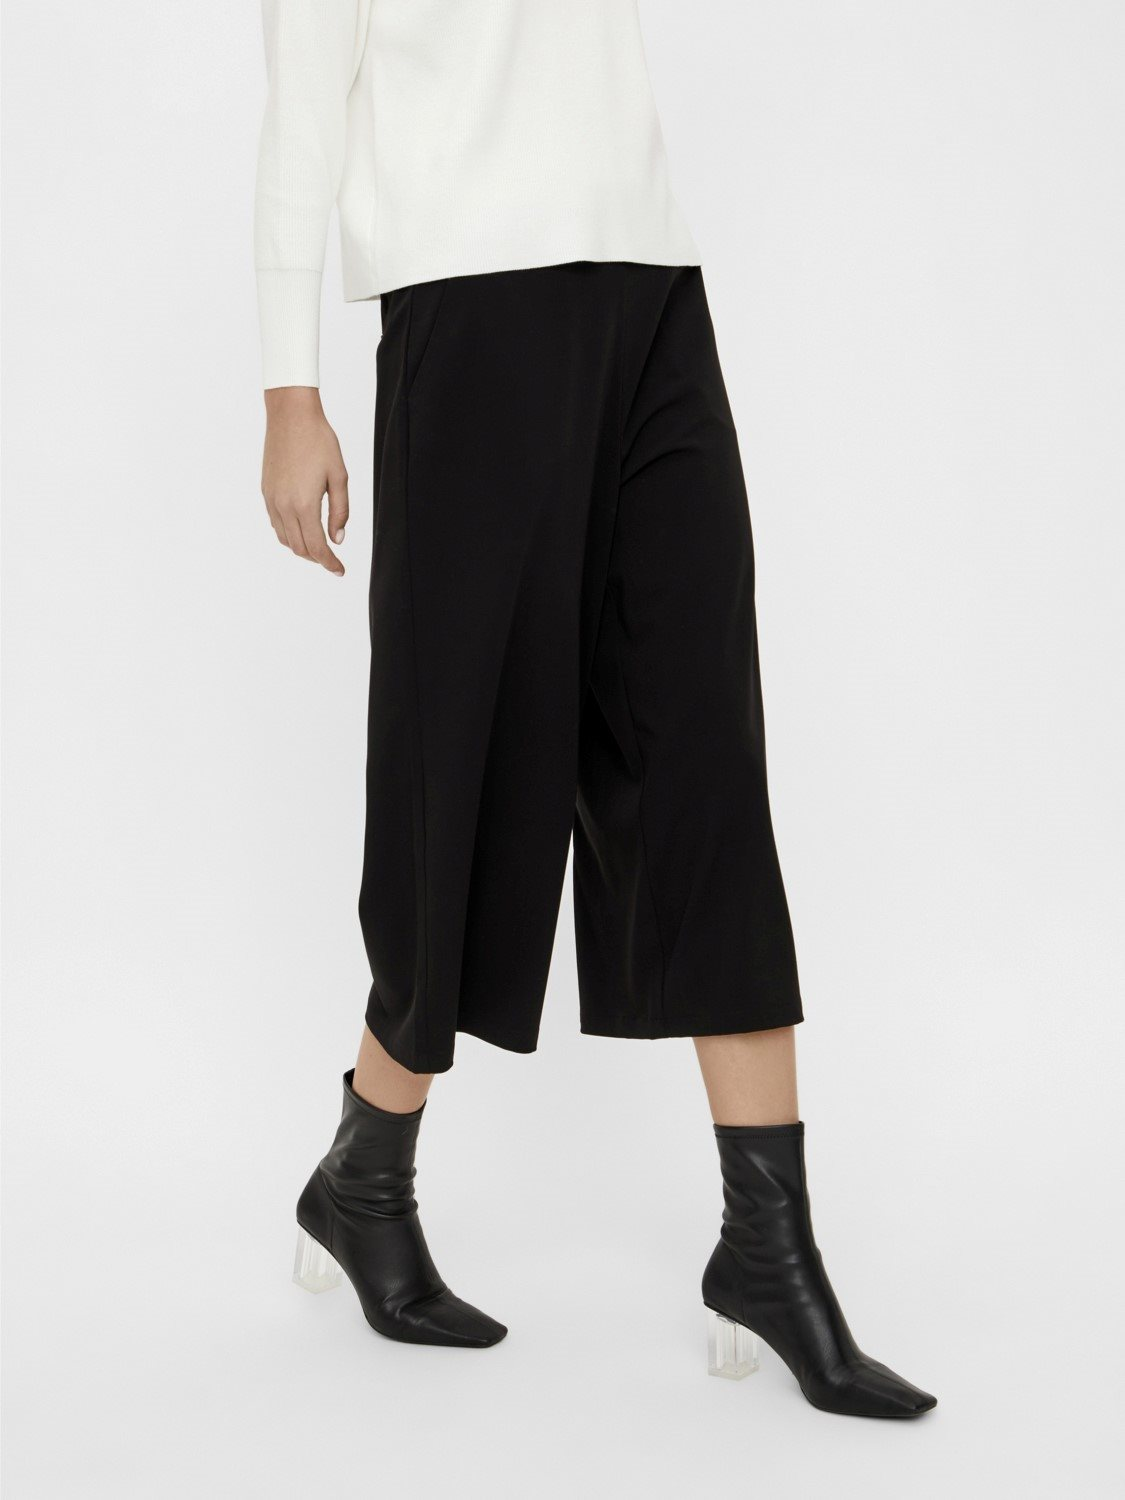 OBJCecile new culotte